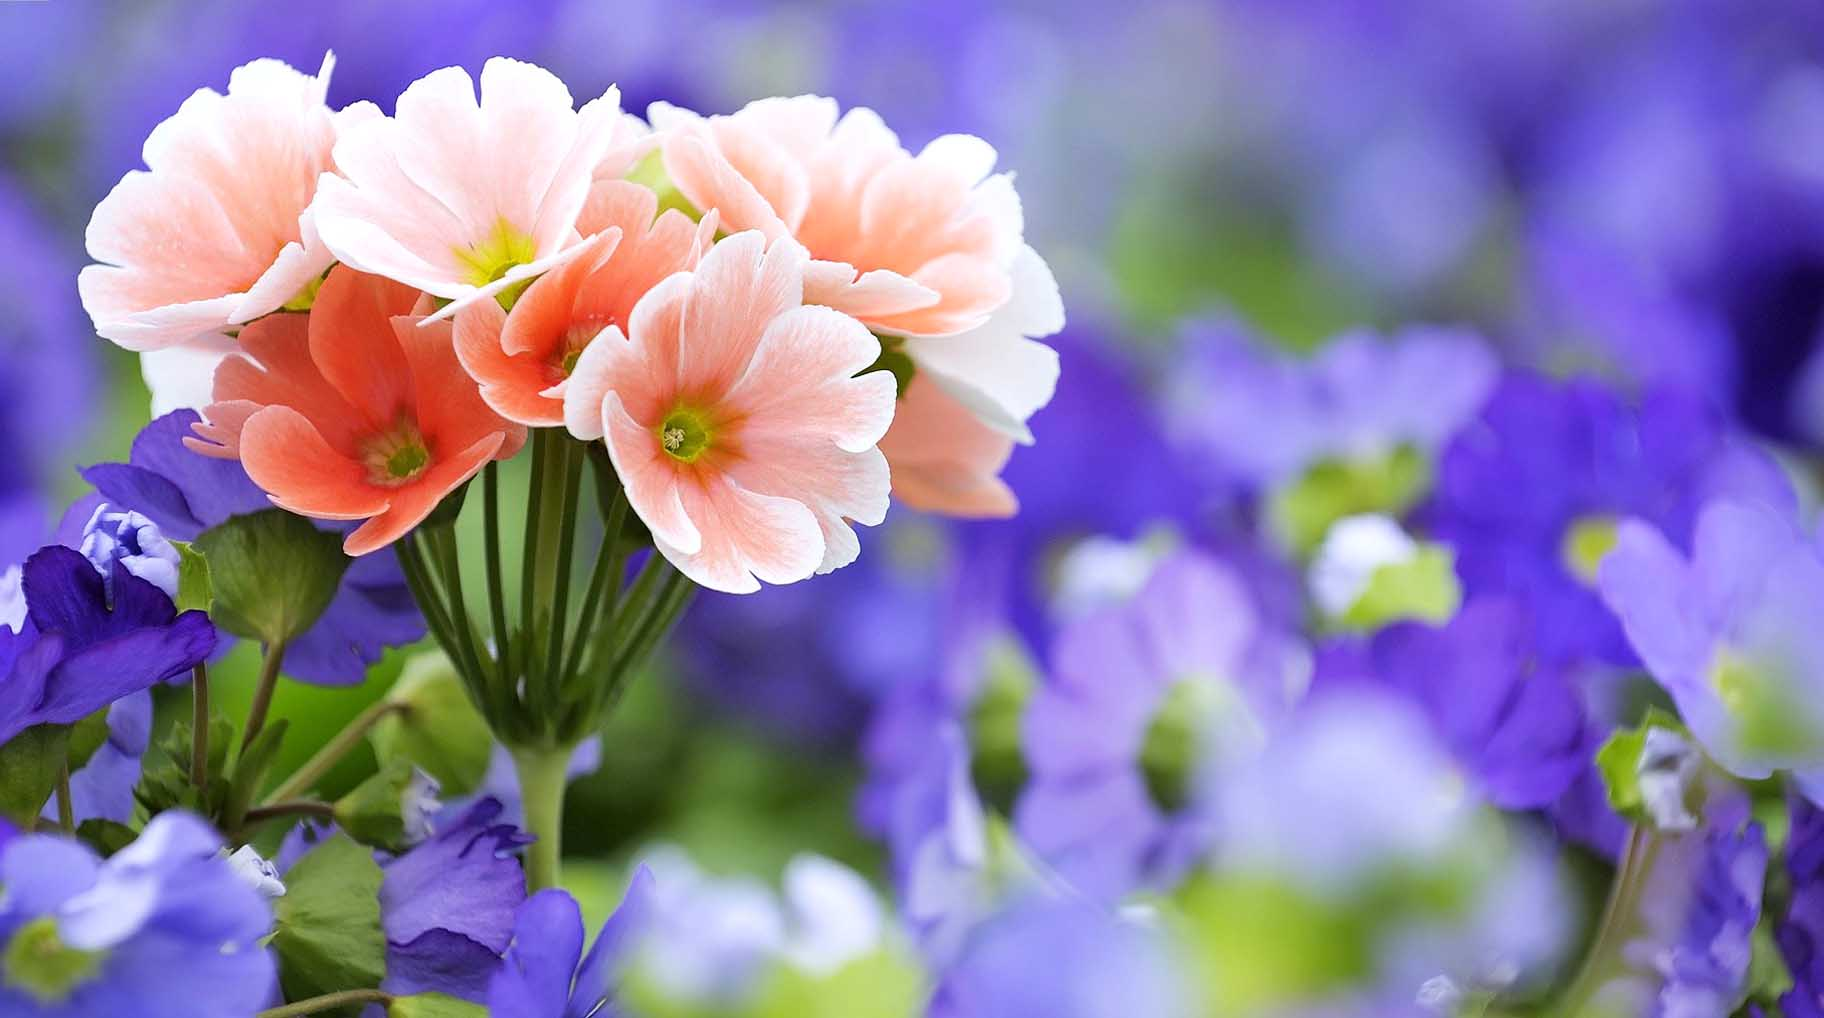 Download Wallpapers Of Flowers and Nature 2014 Elegance Collections 1824x1018